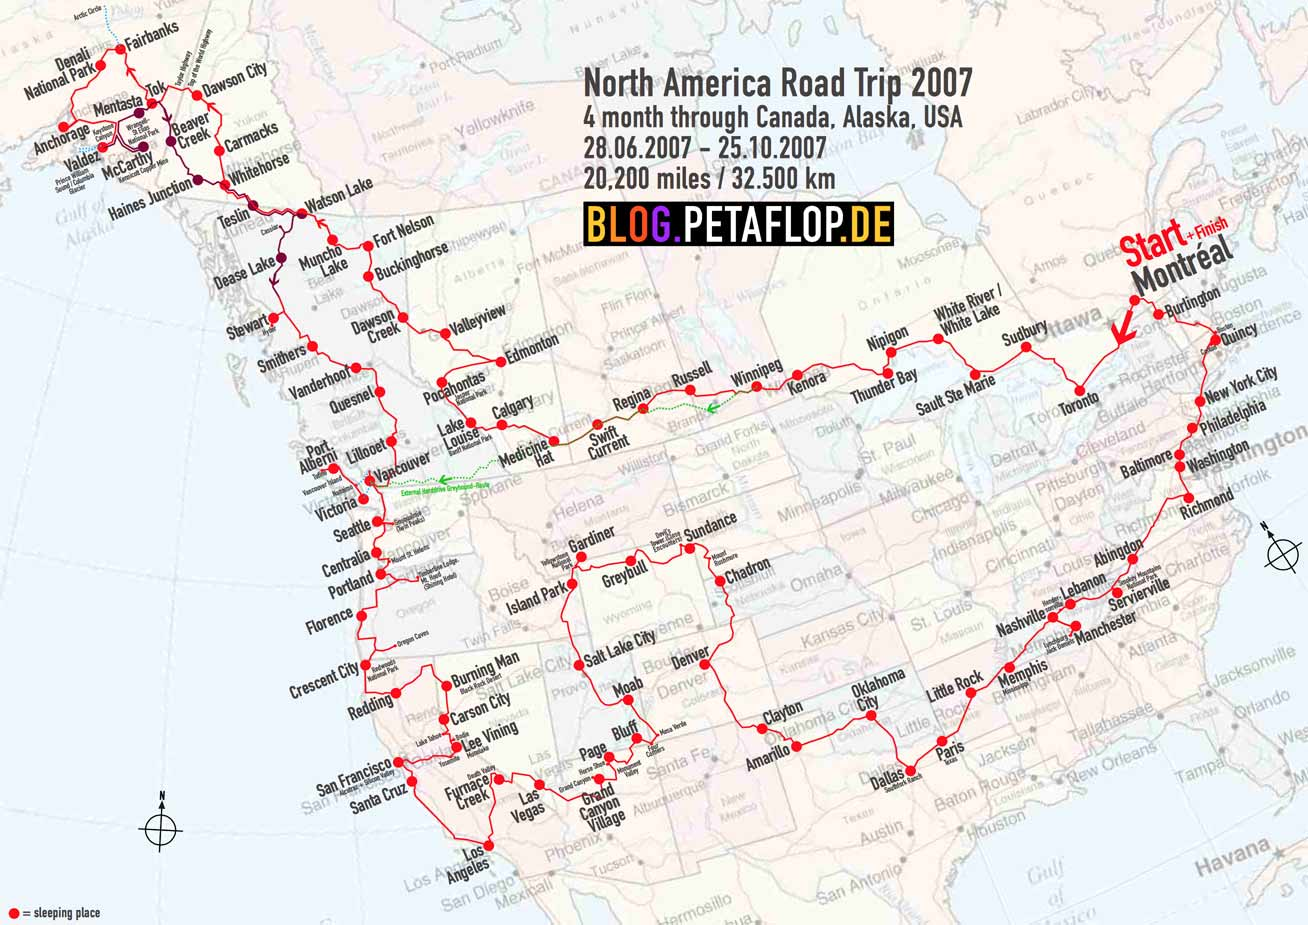 20,000 Miles Road Trip: Canada, Alaska, USA – Peter ... on map of bc canada, map vancouver to alaska, large print map of alaska, map of western canada and alaska, us map alaska, vancouver map canada alaska, map of ak, map of usa with hawaii, map of alaska and canada together, map of canada and greenland, map of northern alaska, map of russia and canada, cities in russia near alaska, northern canada and alaska,